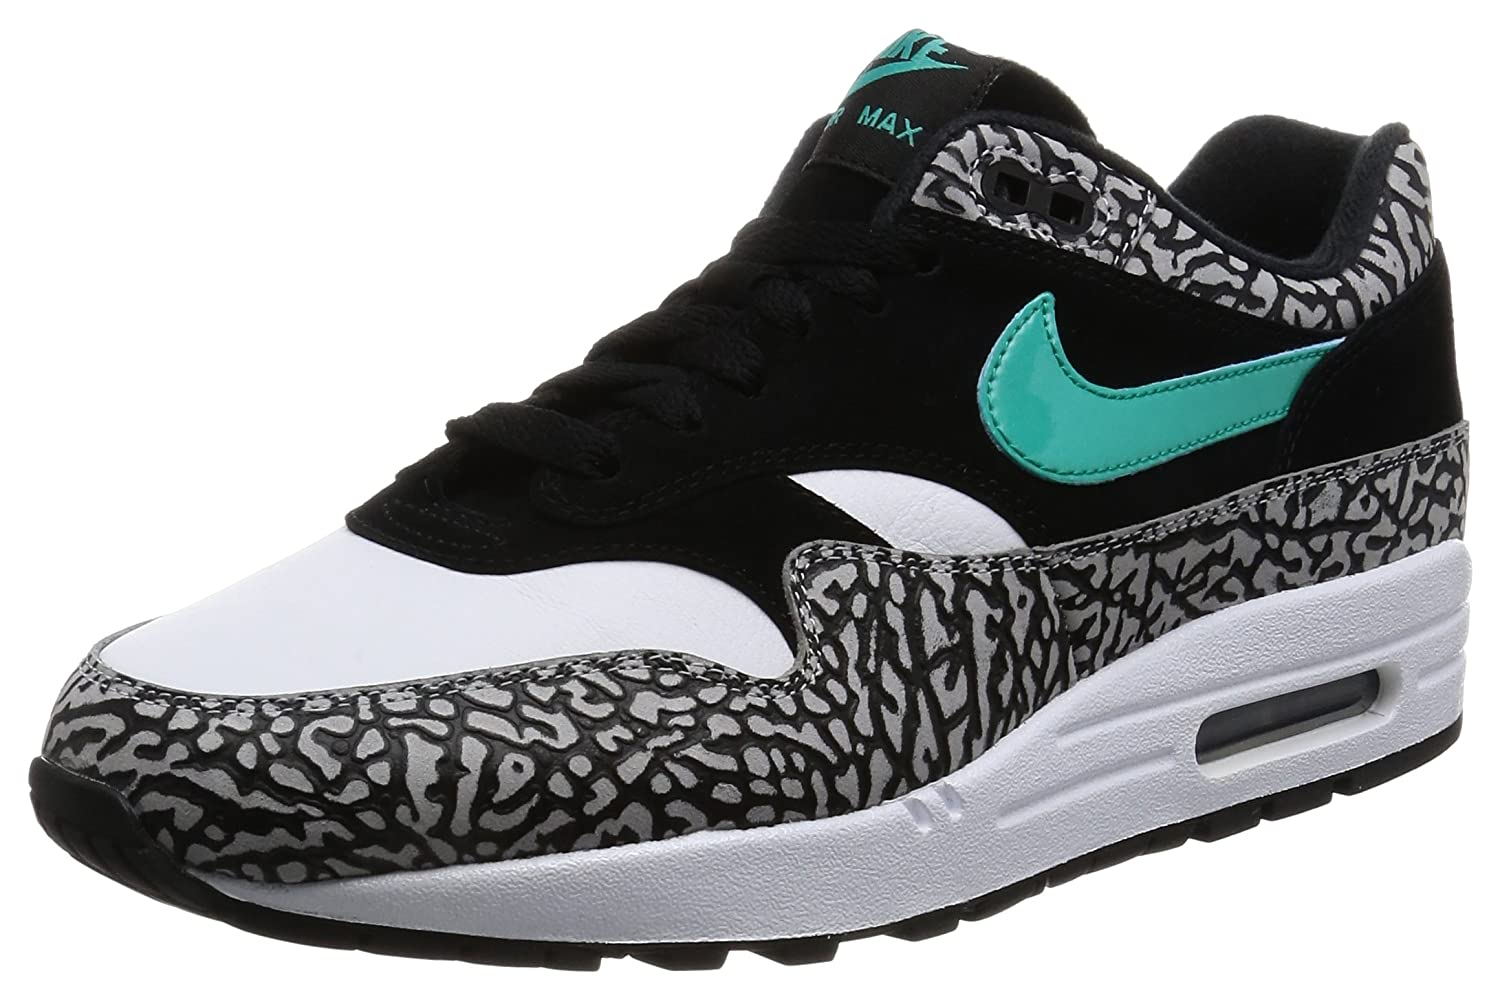 dfbb734c06 Amazon.com | Nike Air Max 1 Premium Retro